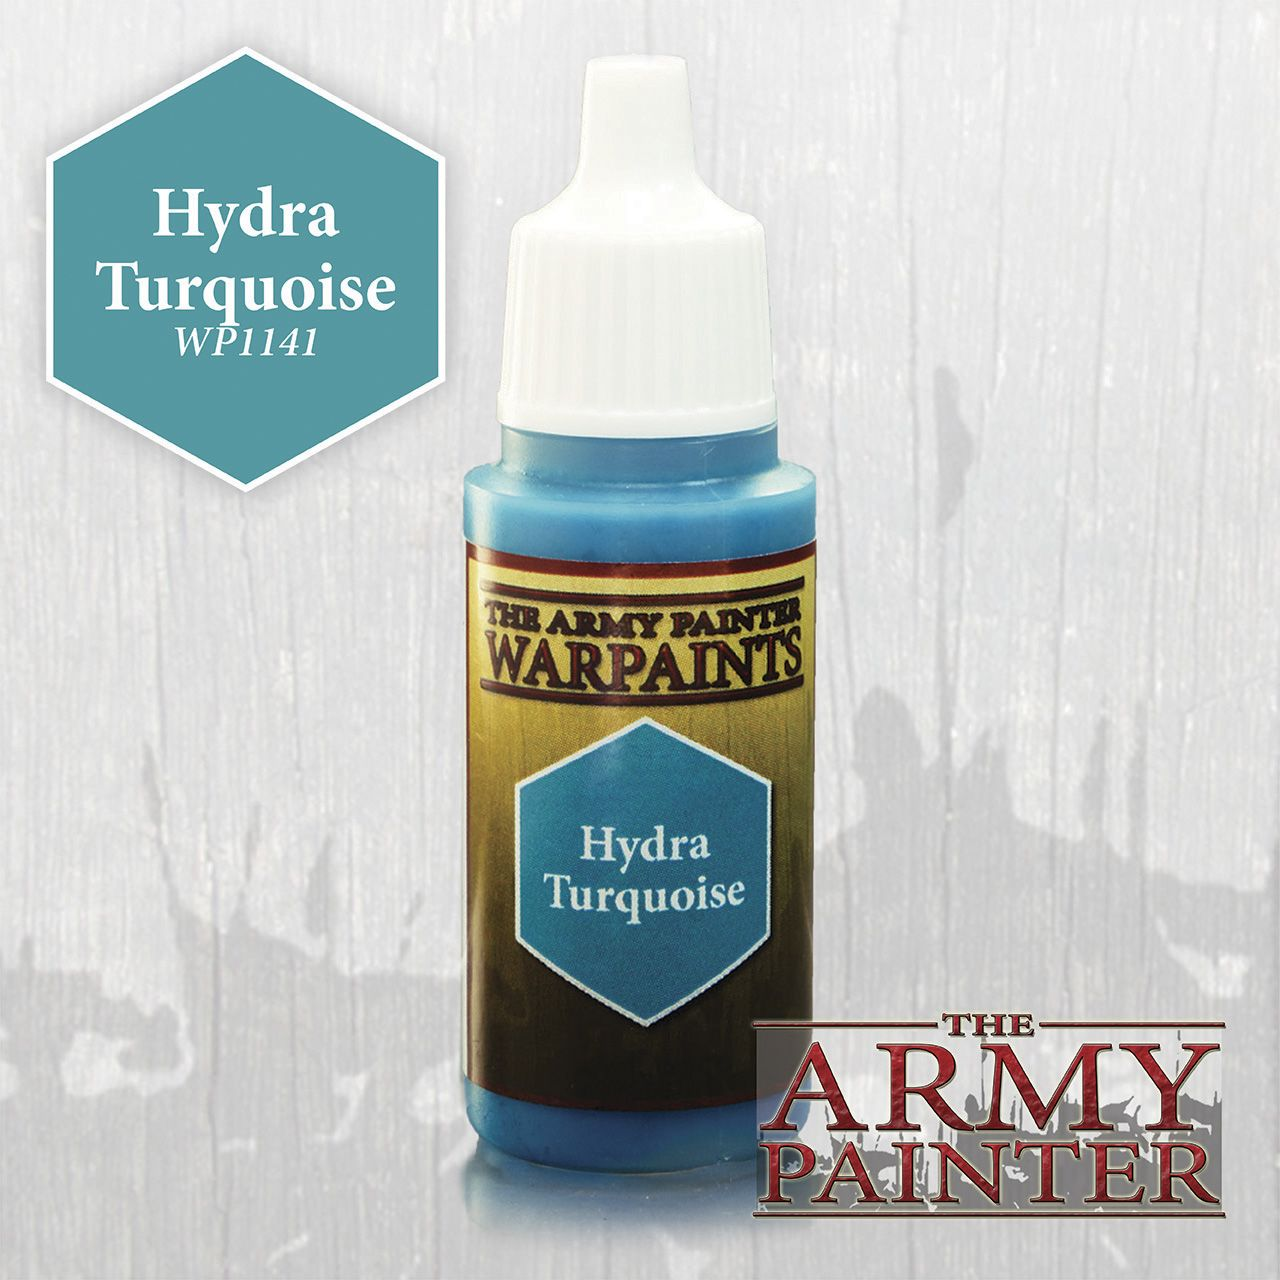 Hydra Turquoise, 18ml